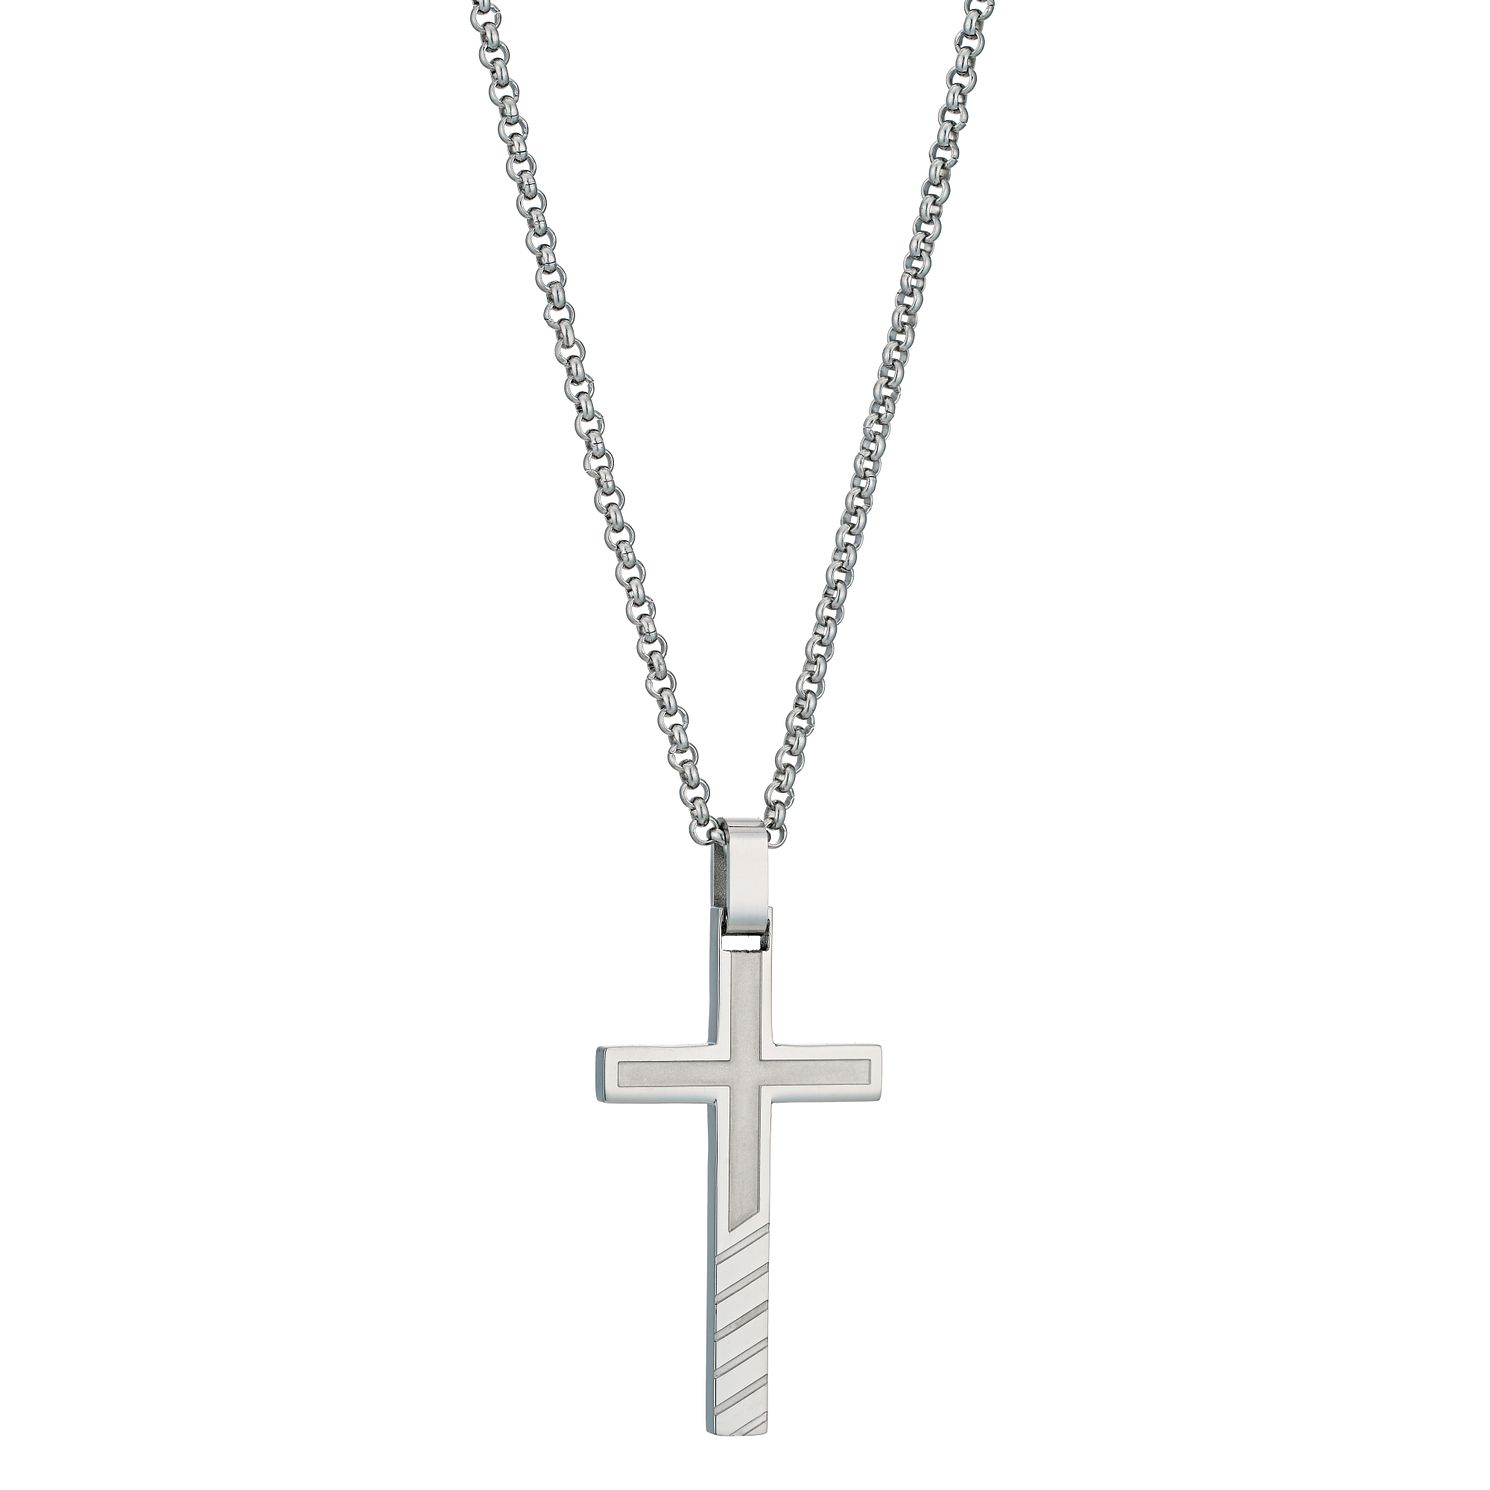 Stainless steel cross pendant hmuel stainless steel cross pendant product number 9288902 aloadofball Images